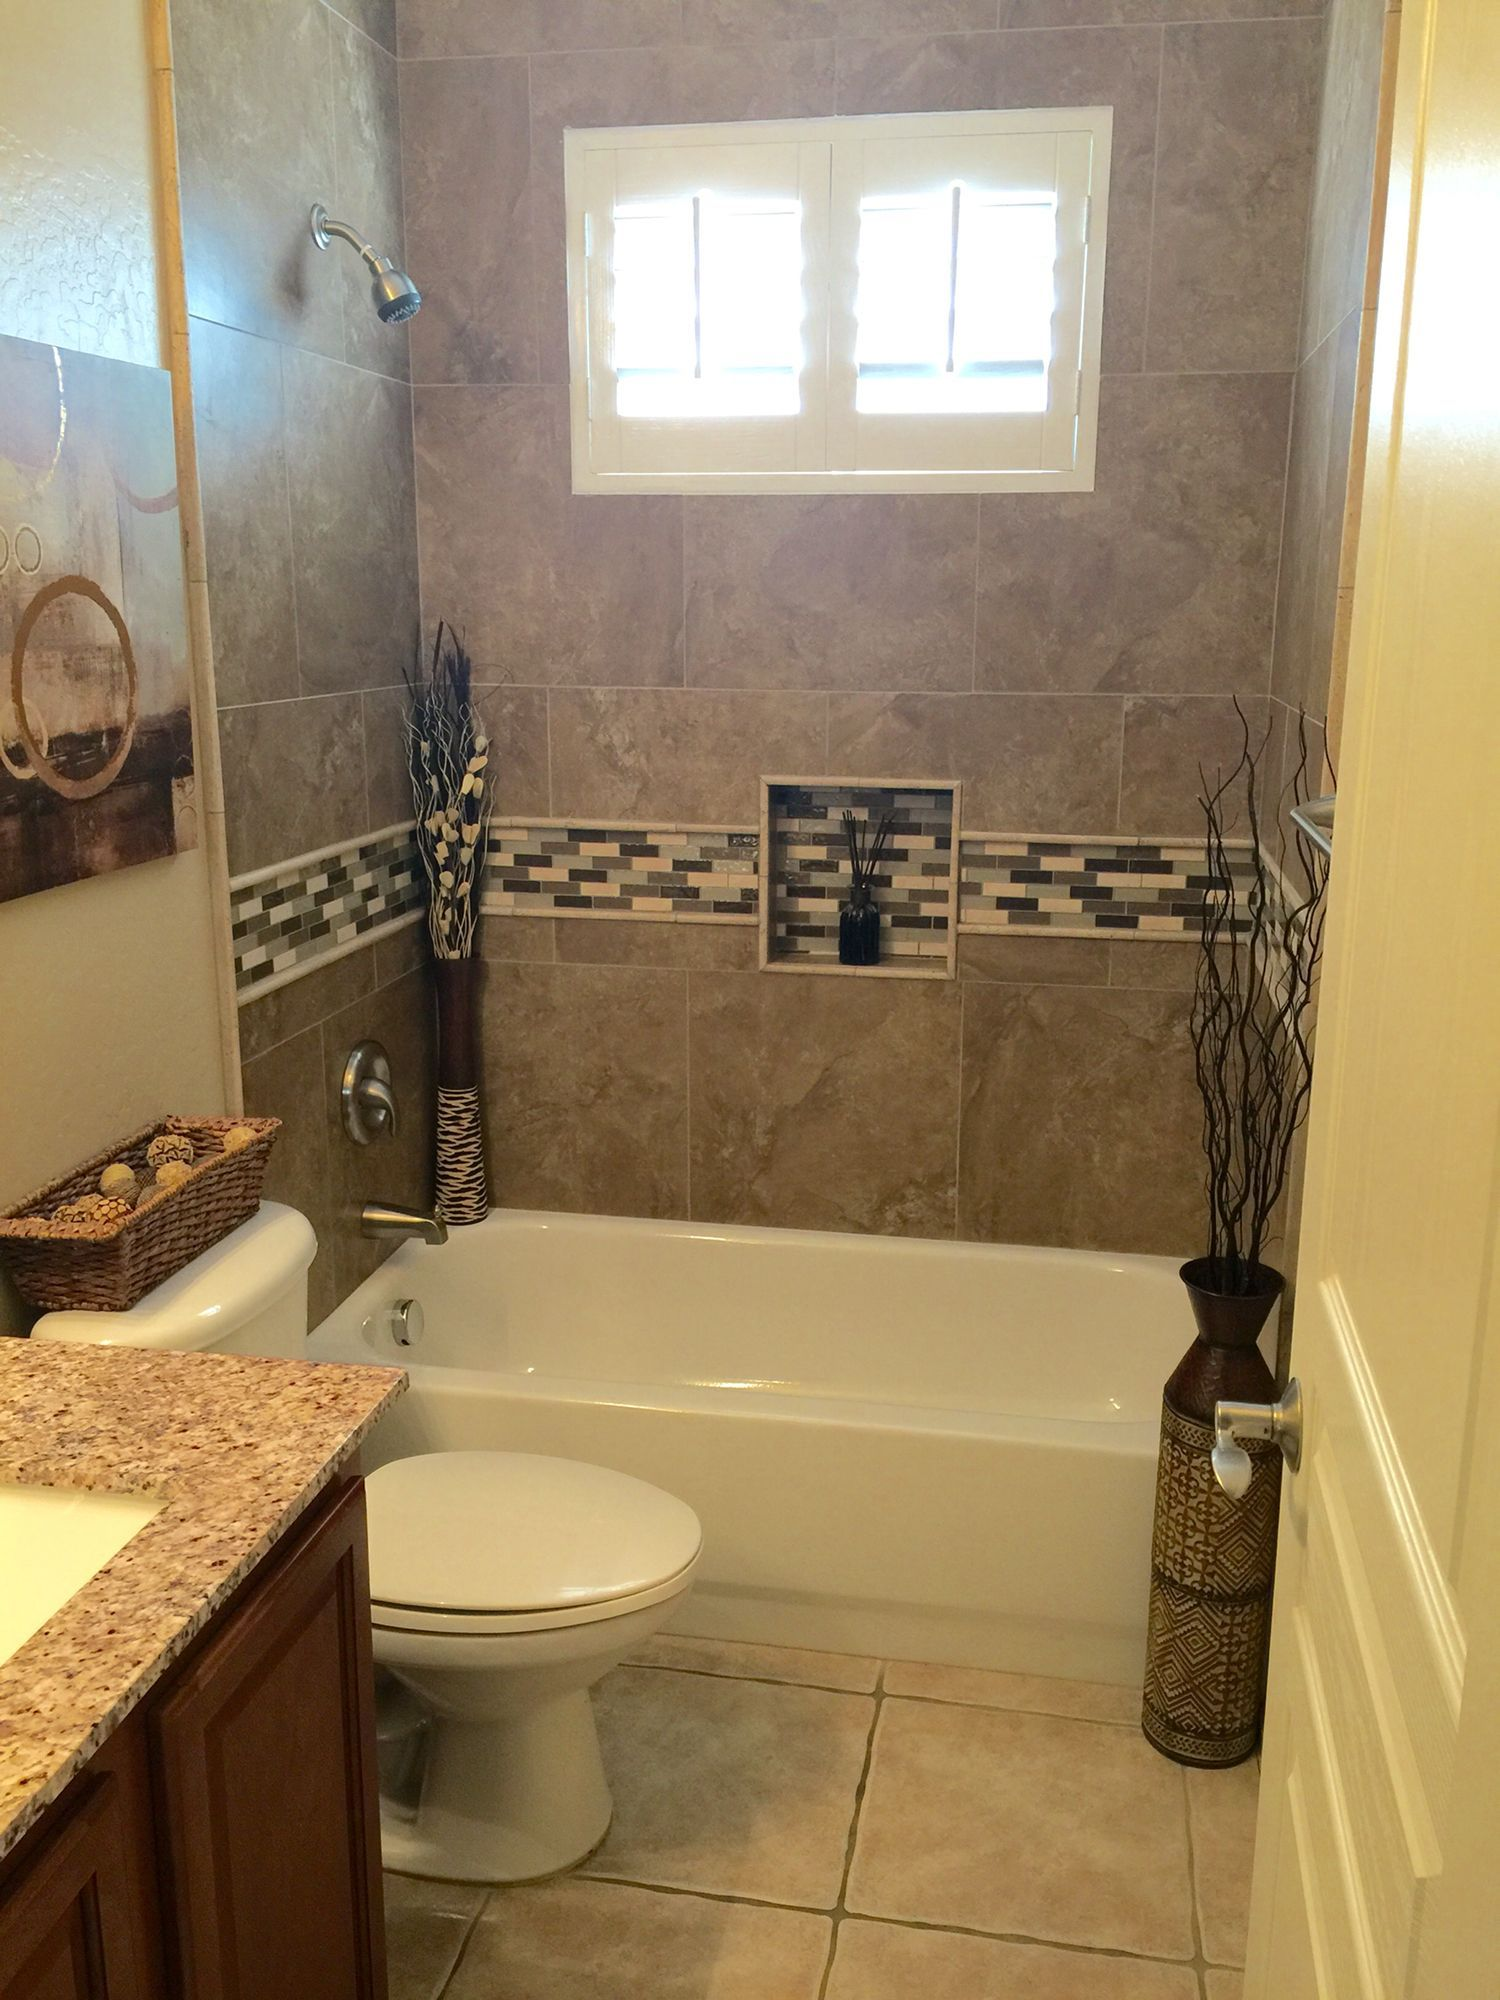 Bathroom Remodel. Tiled The Bathtub Shower Surround.